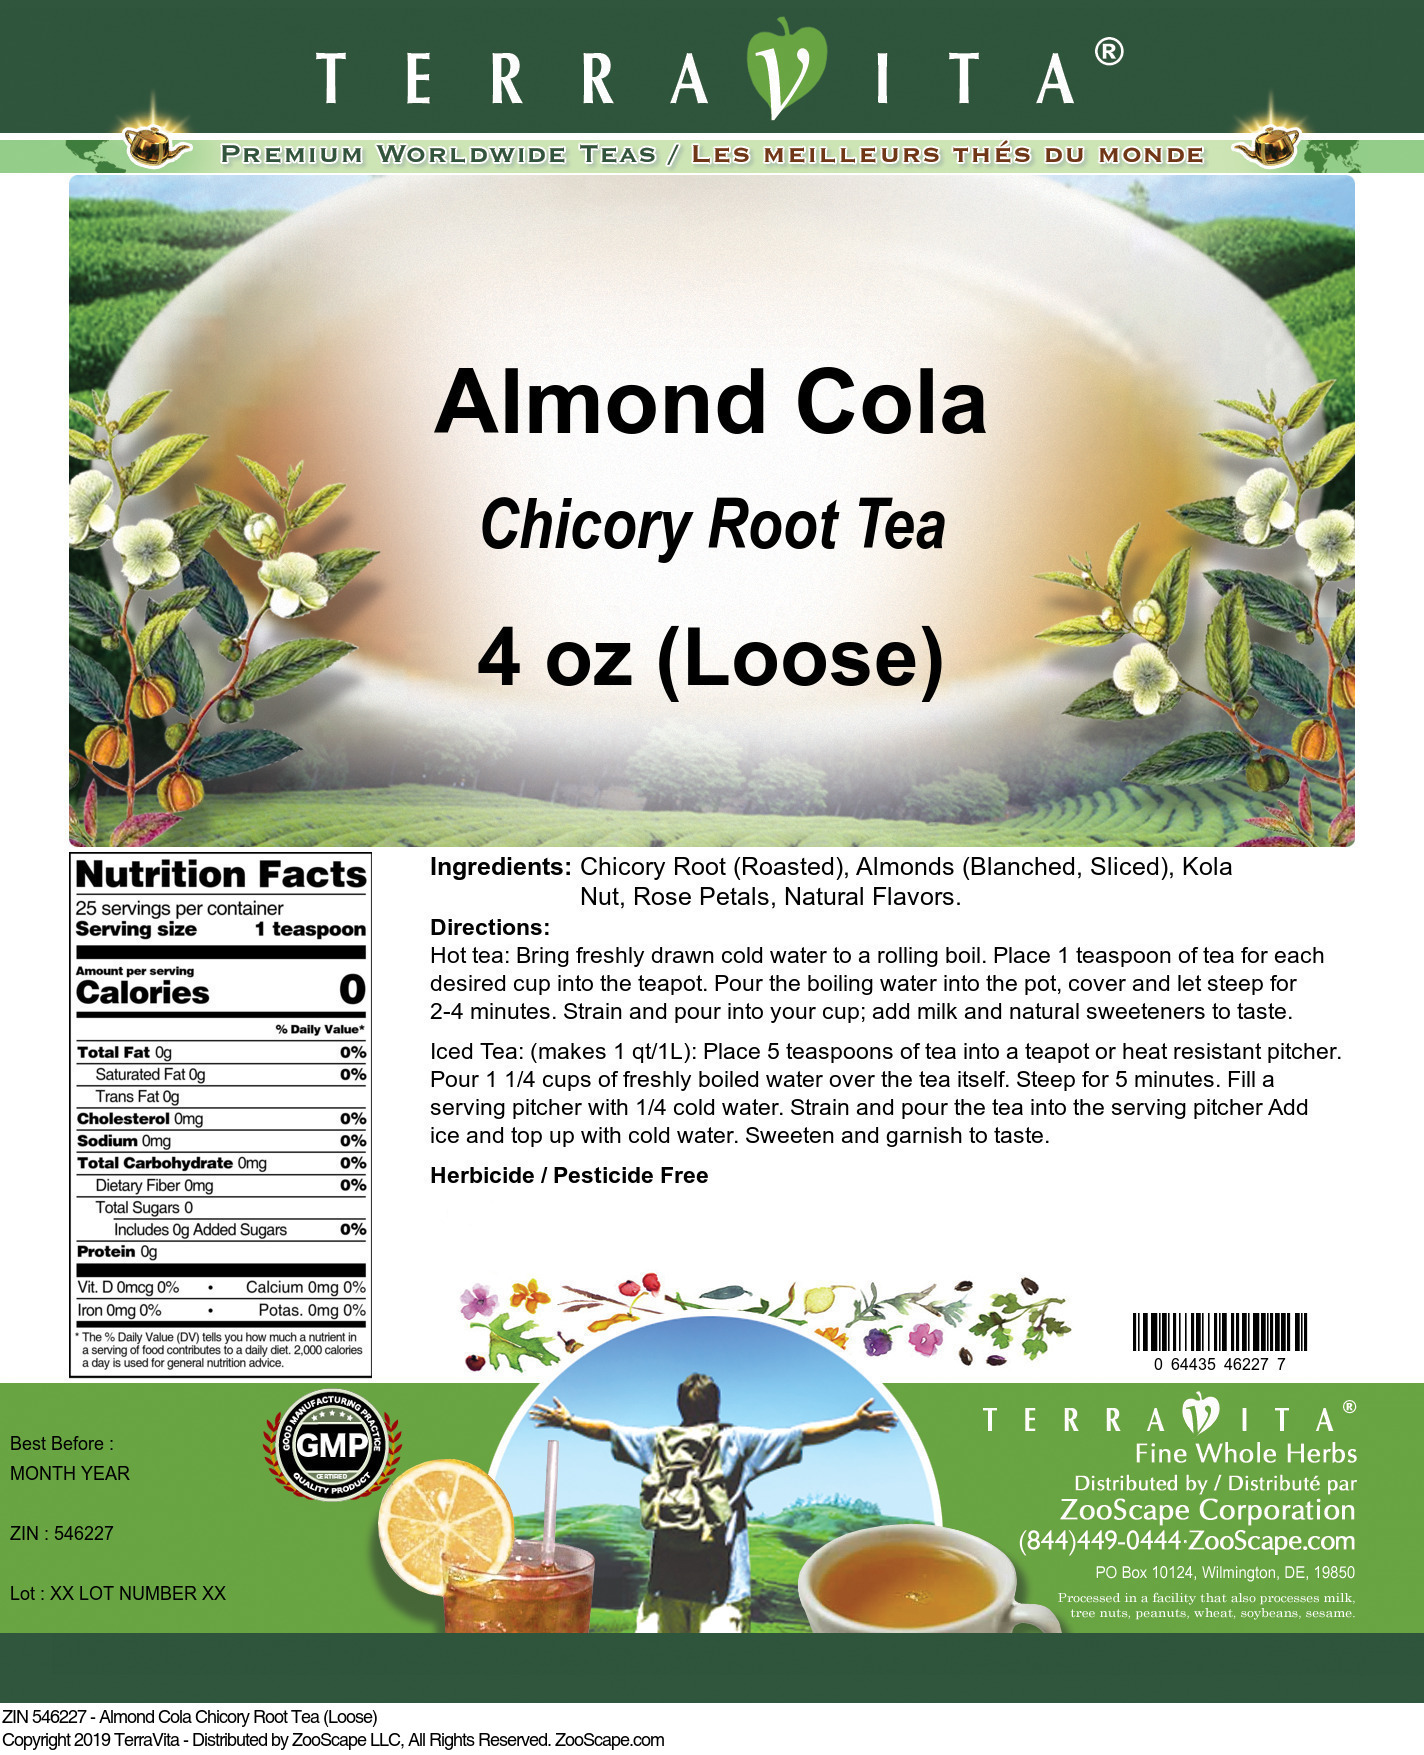 Almond Cola Chicory Root Tea (Loose)